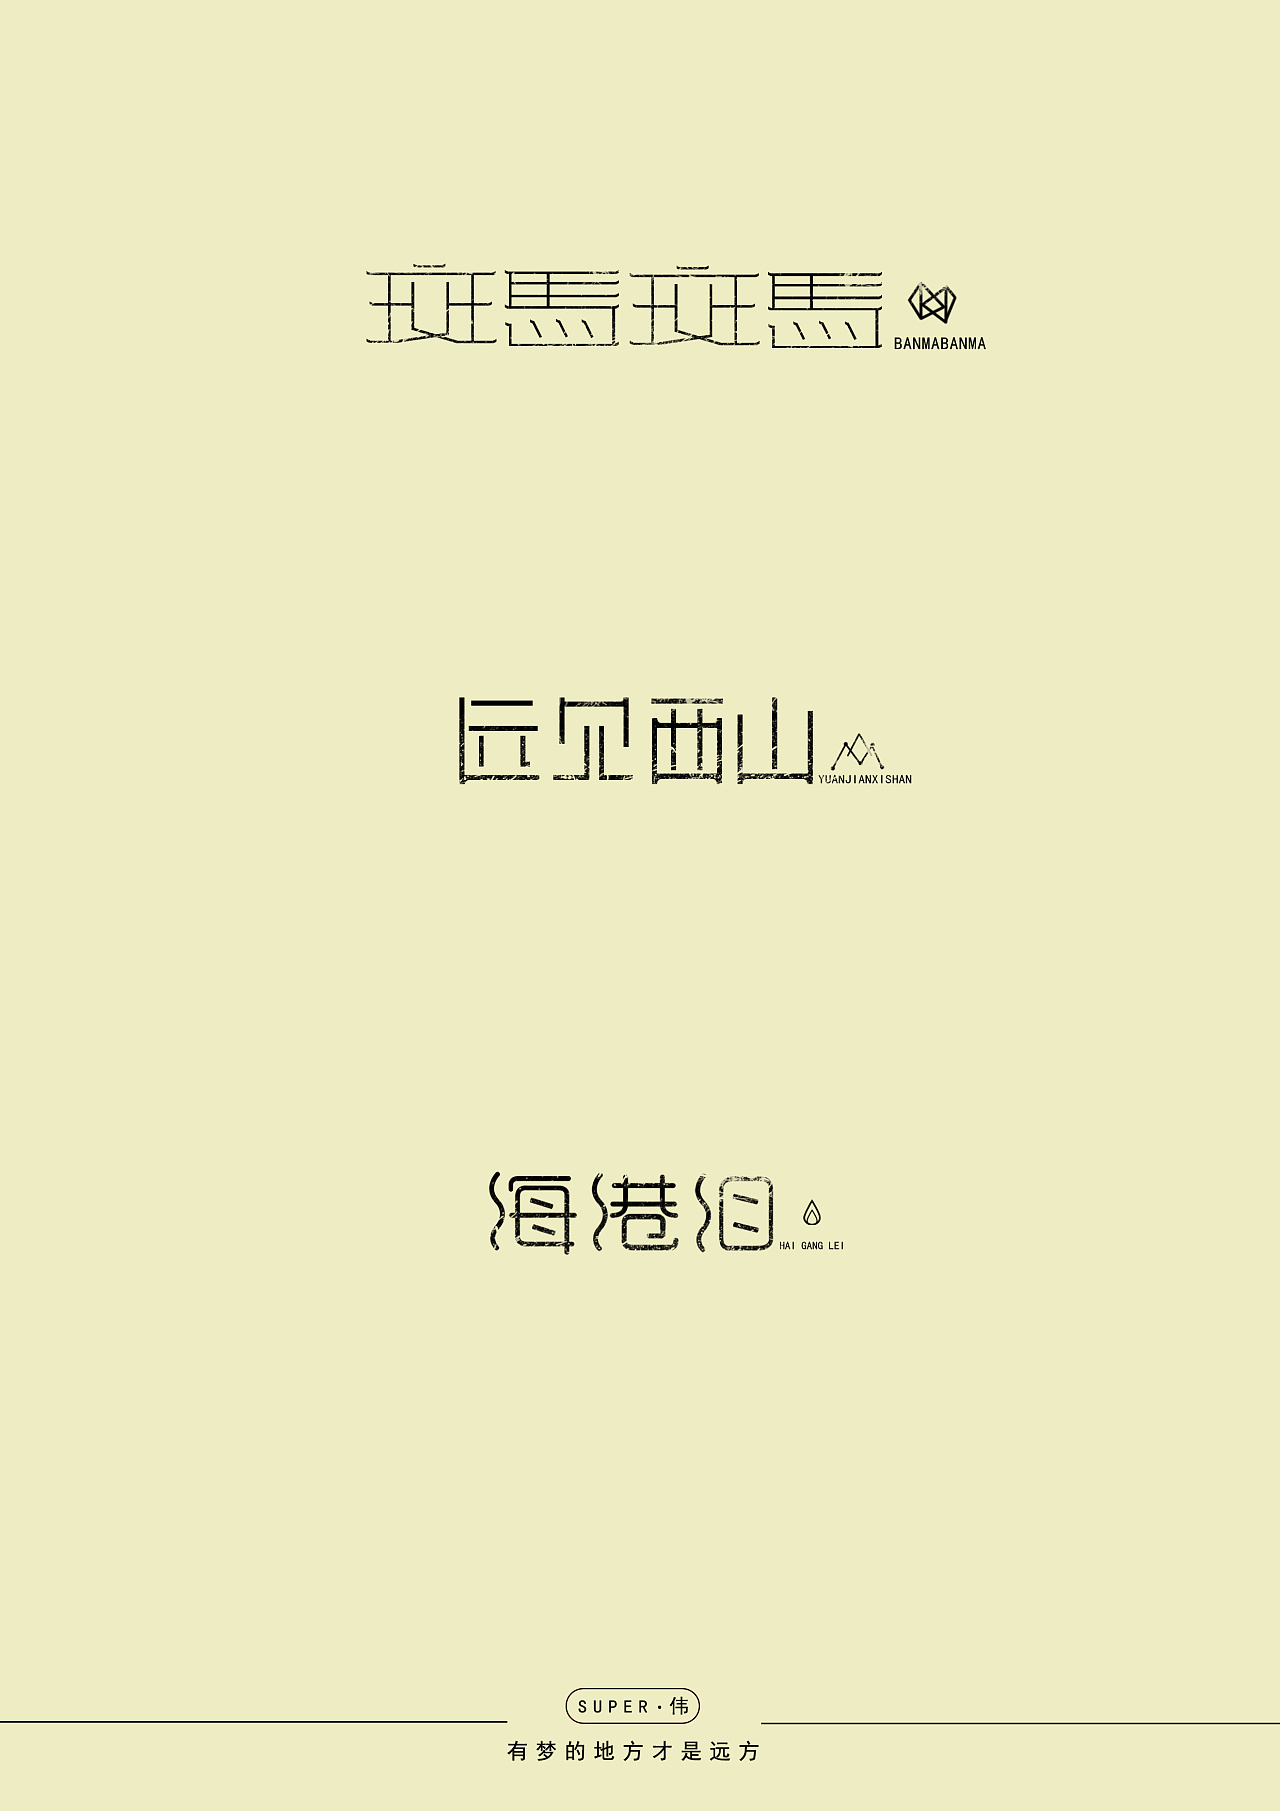 chinesefontdesign.com 2017 09 04 12 30 19 463803 20P The Chinese font design collection in August 2017